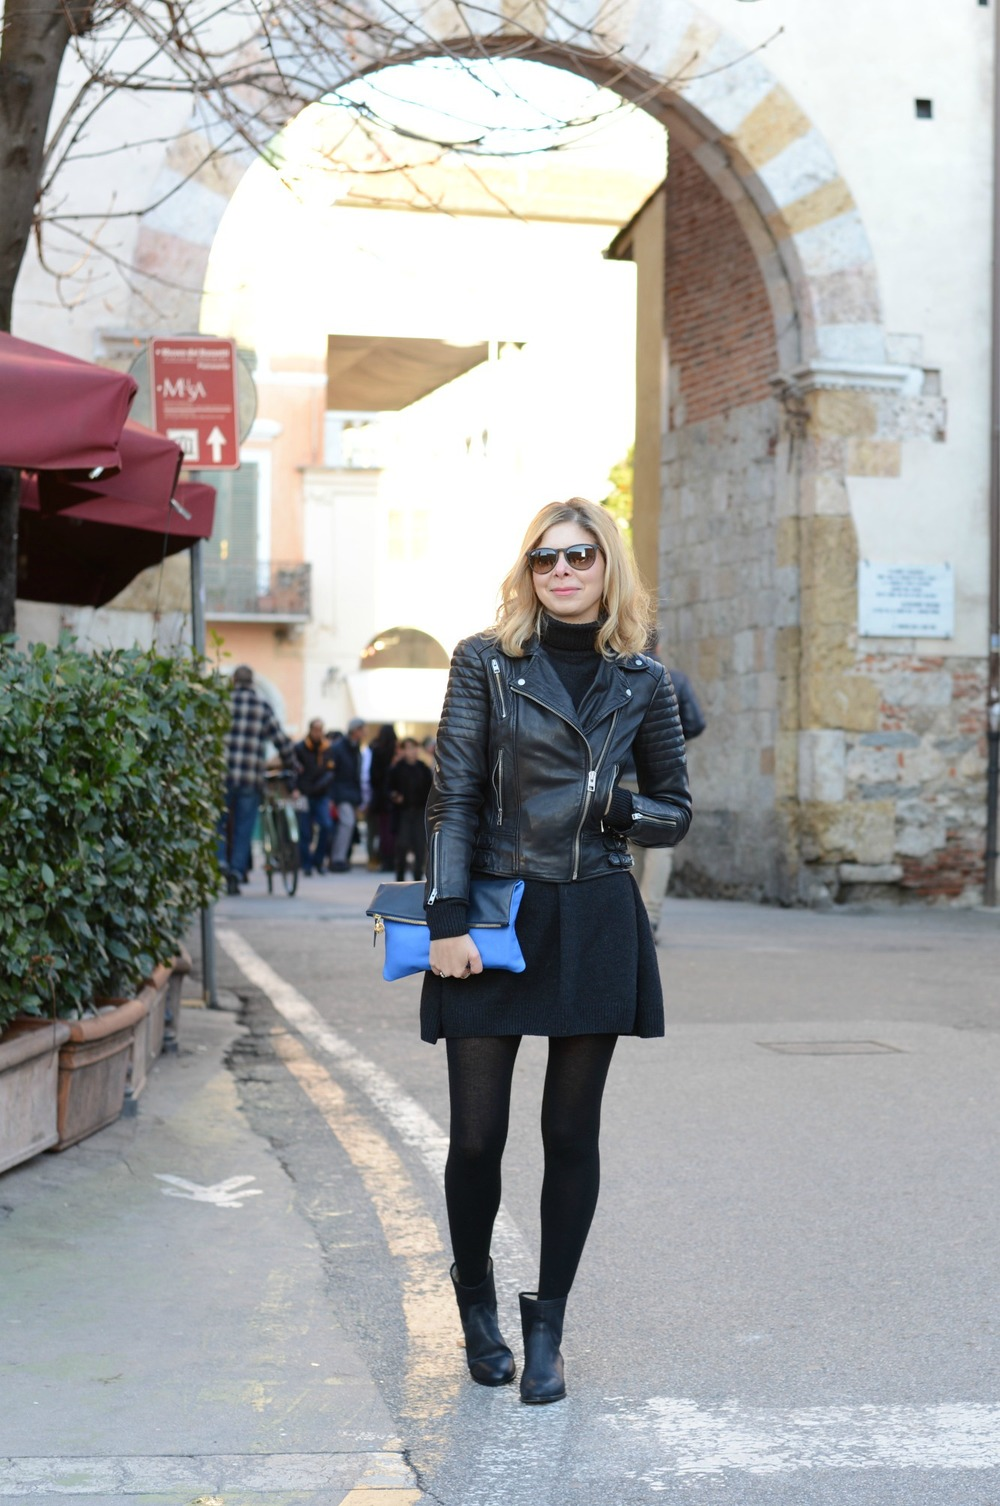 Wearing Allsaints leather jacket, Clare Vivier clutch, Cos jumper dress, Rayban glasses, Jimmy Choo Boots.